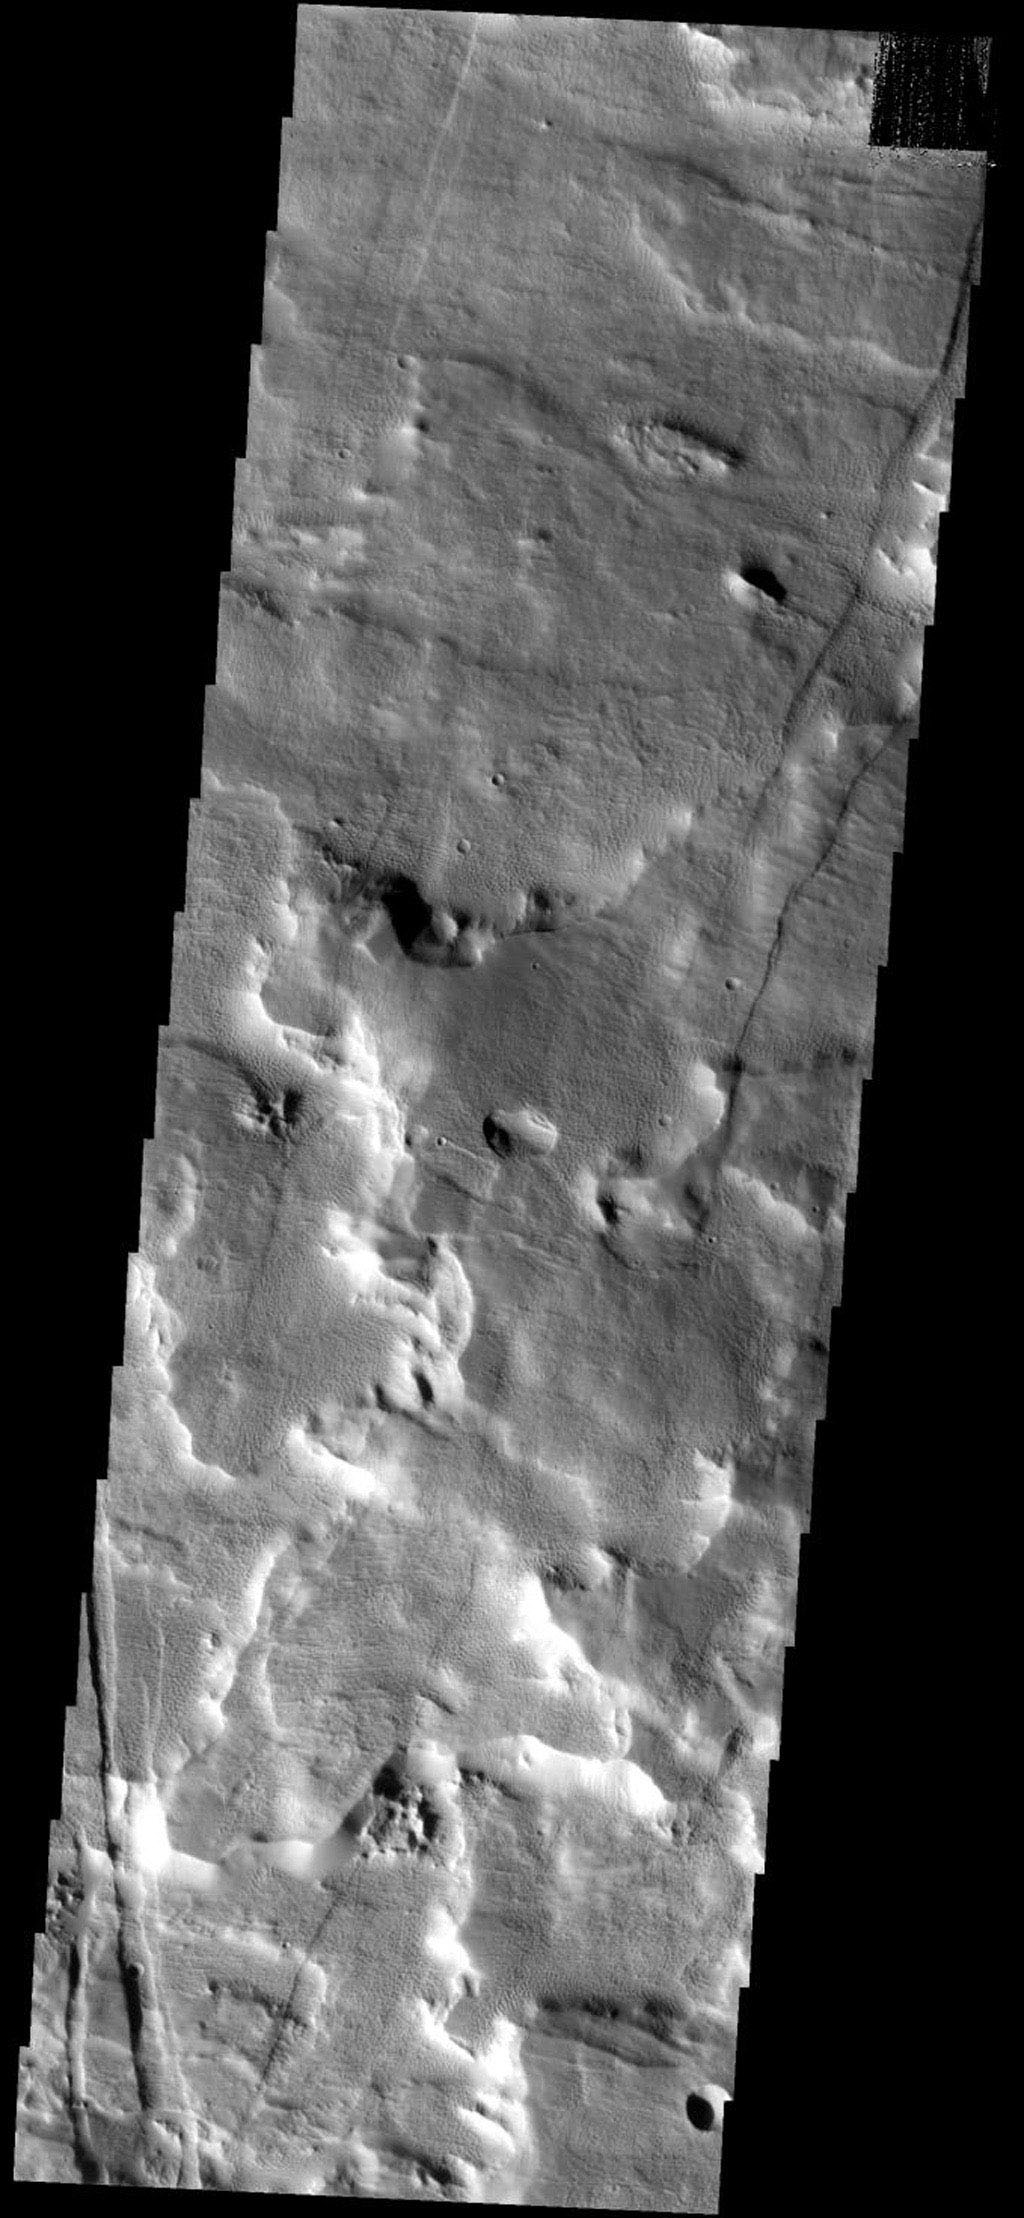 This image from NASA's Mars Odyssey spacecraft shows part of the flank of the Arsia Mons volcano on Mars. The surface of the flank comprised of small ridges and honeycomb-like depressions.